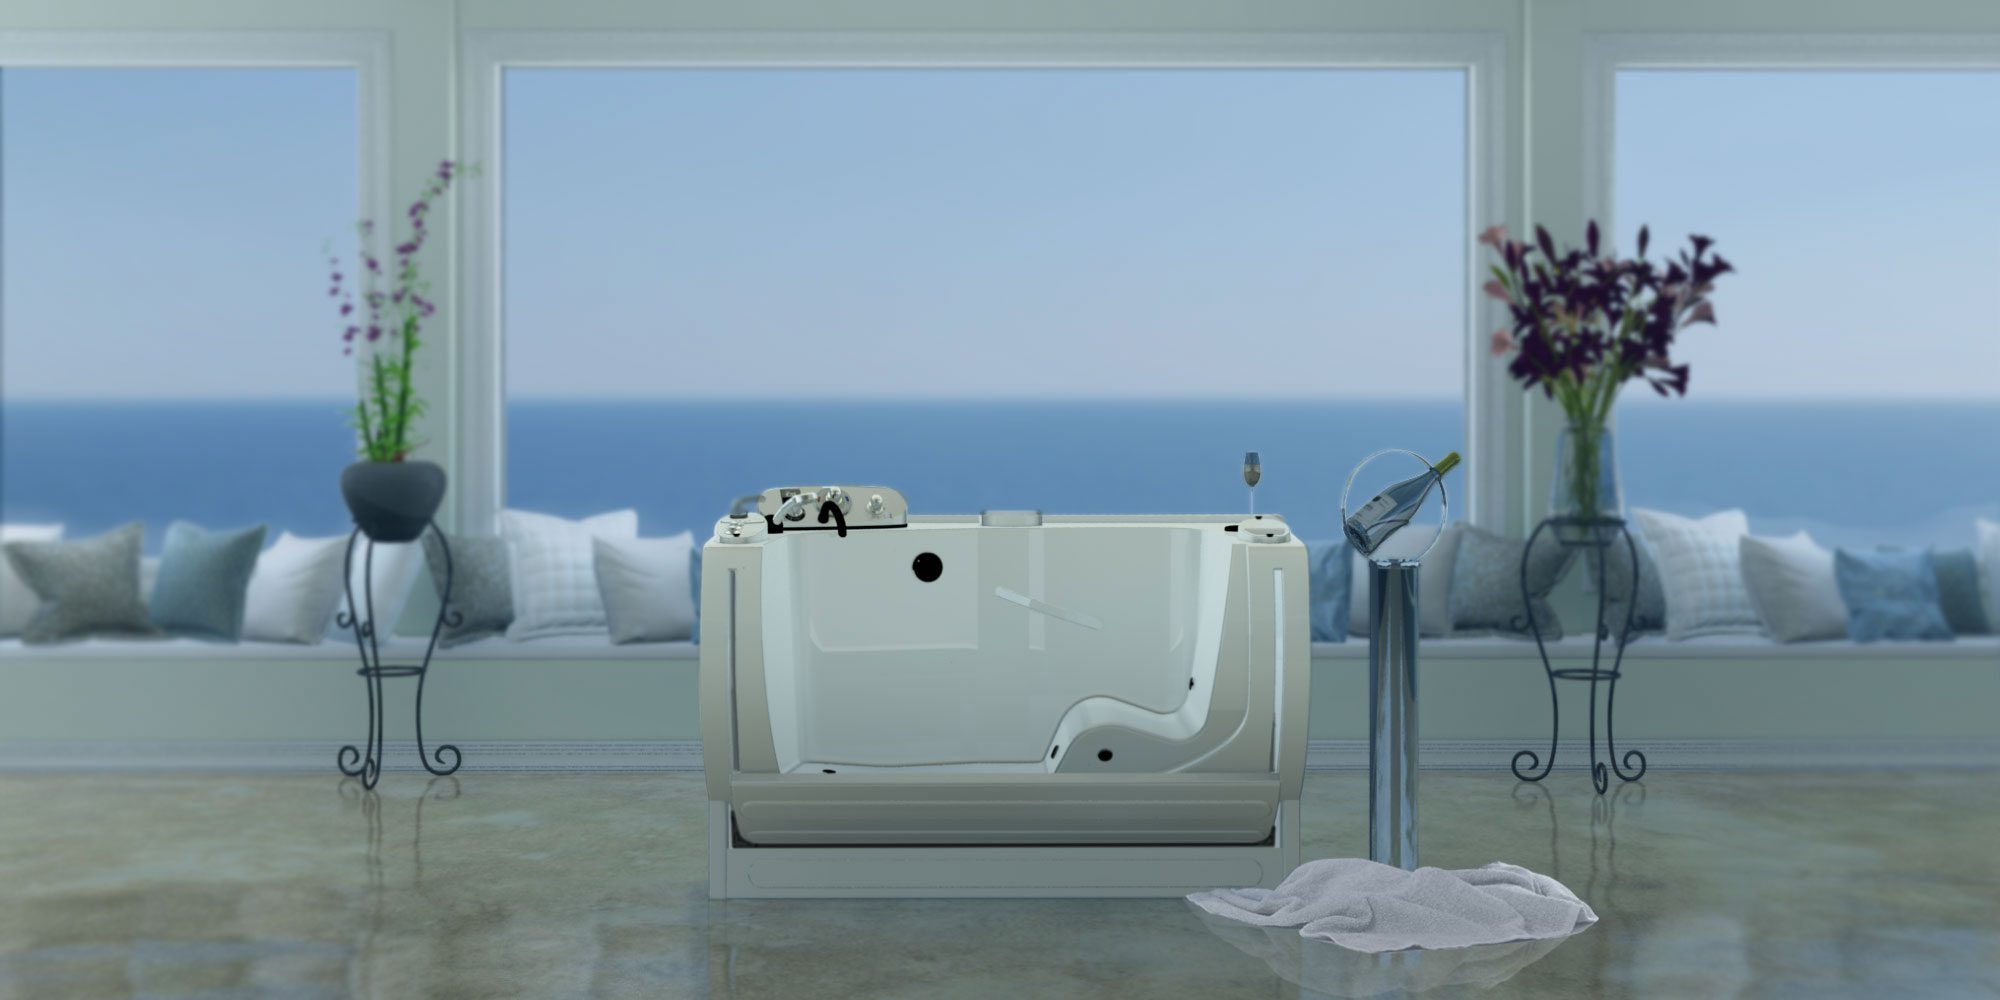 Entree II Spa Tub | MasterCare Patient Equipment